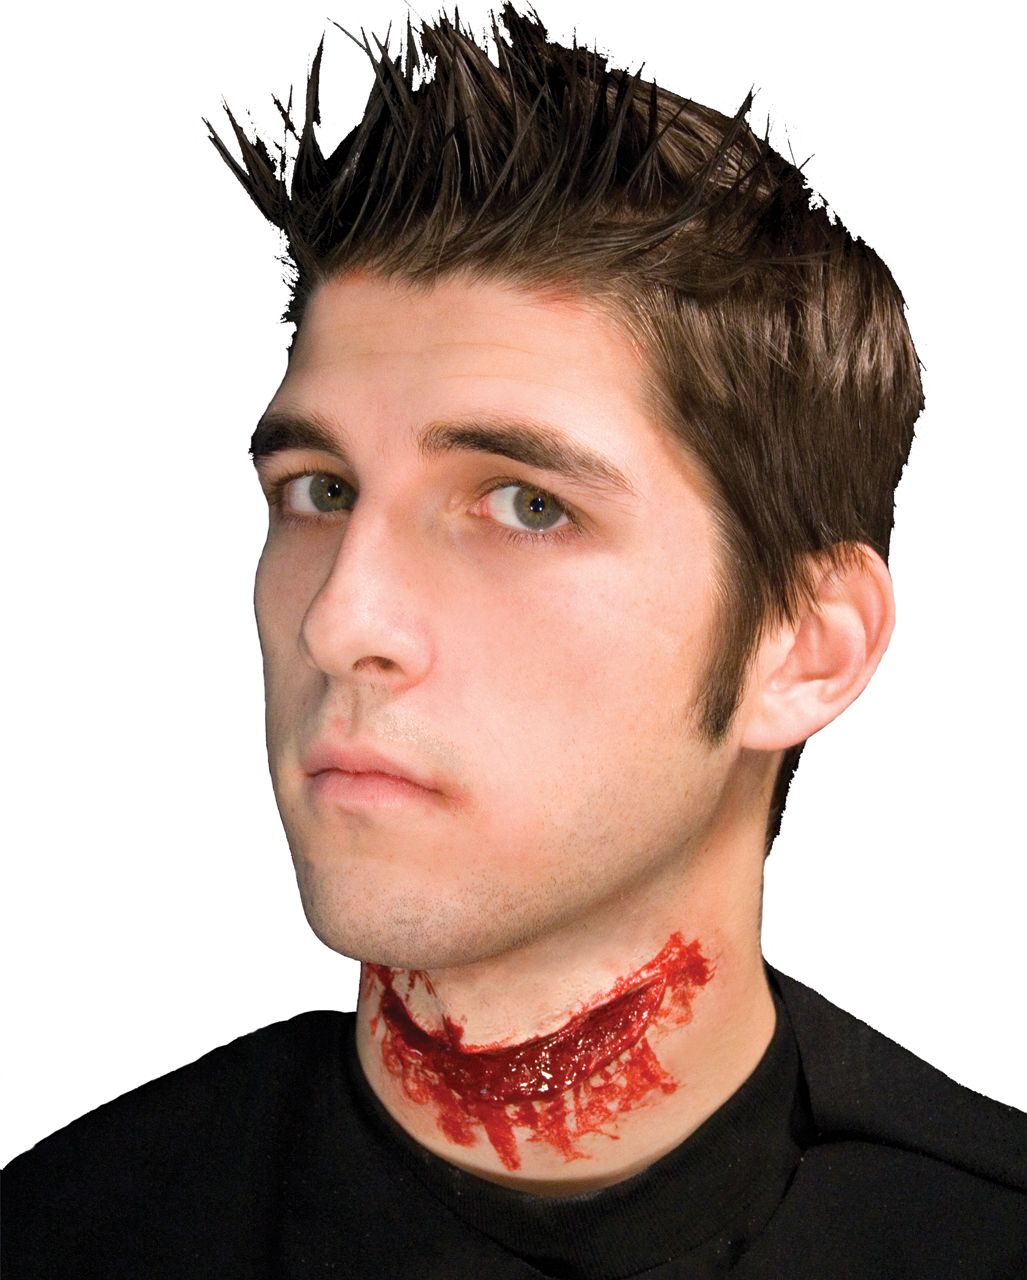 Large Stitched Wounds Latex Zombie Horror Makeup Special FX Costume accessory